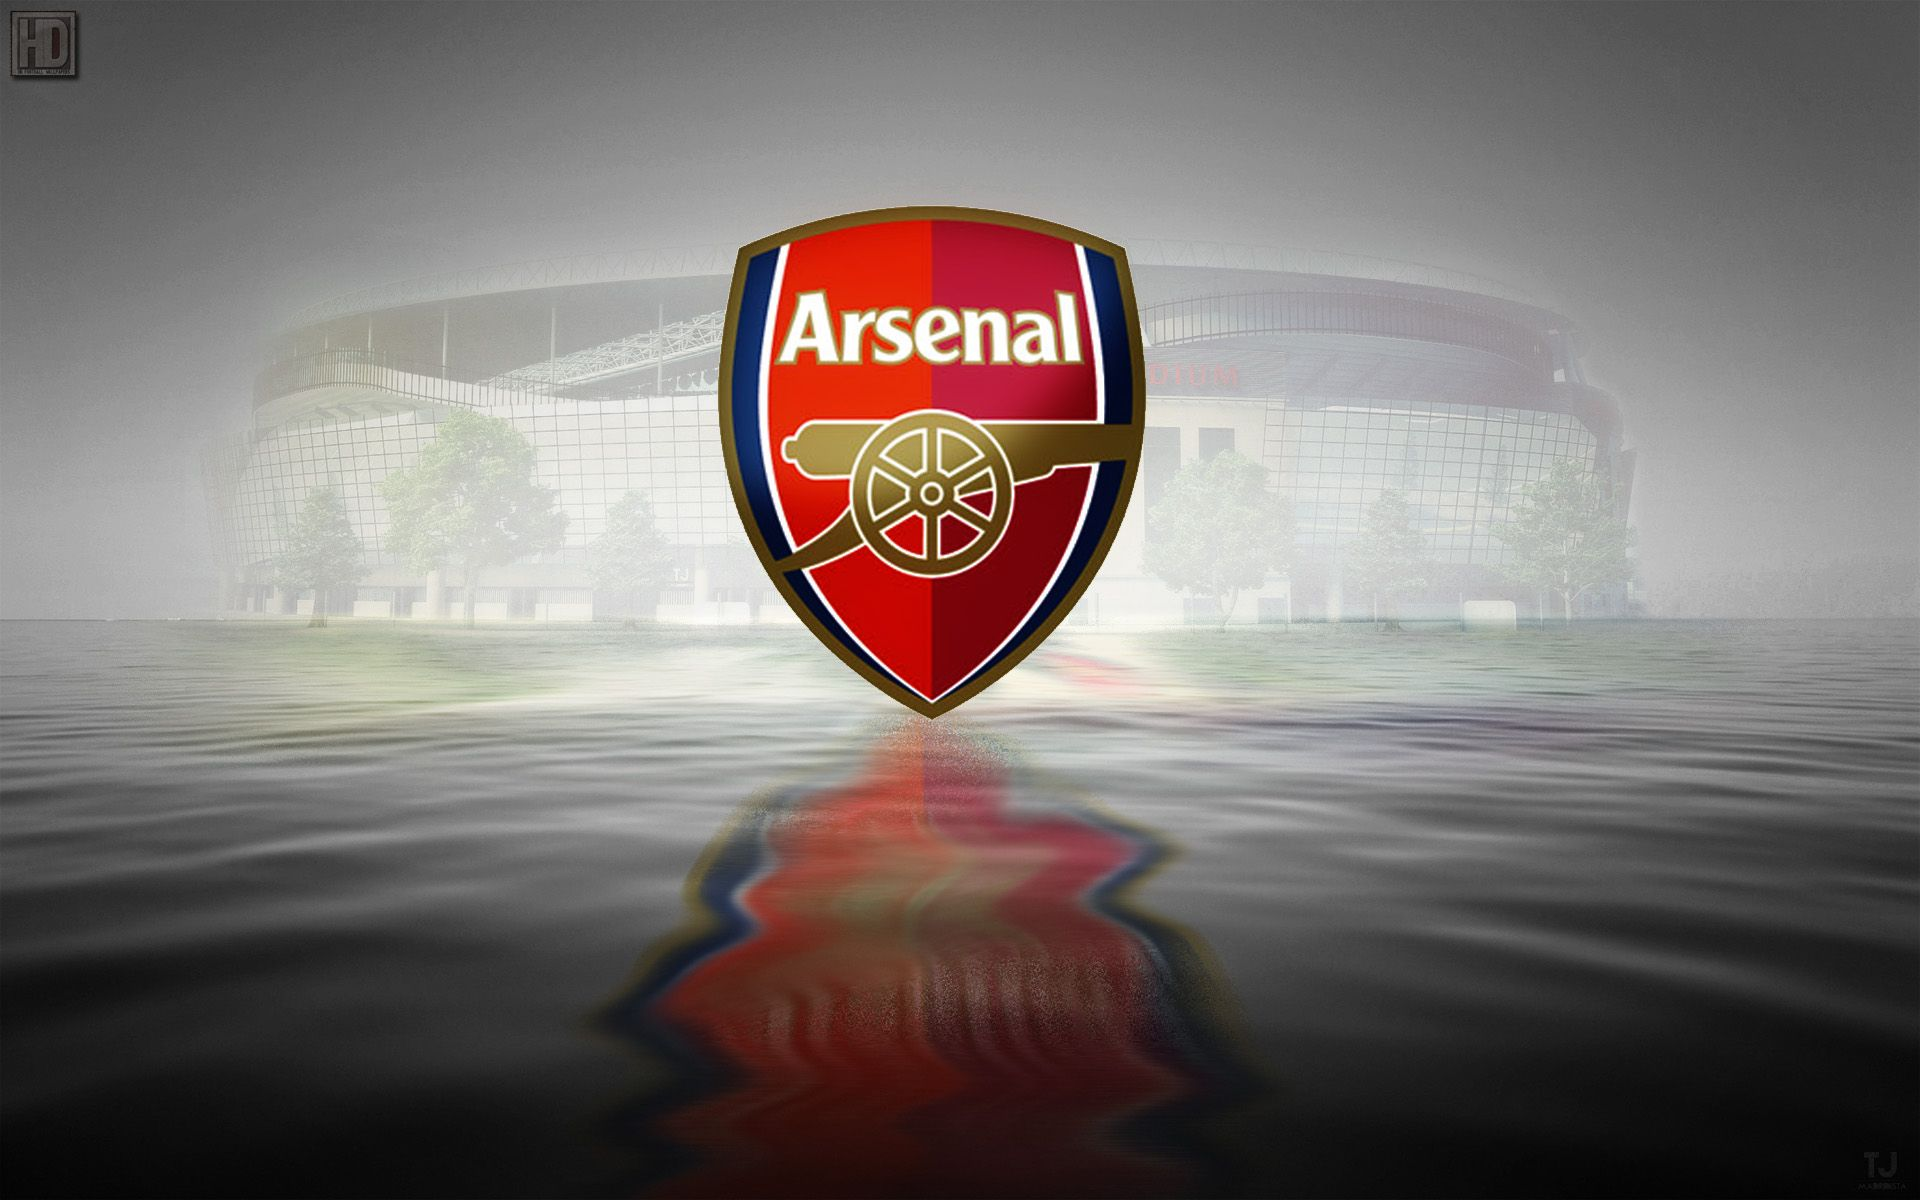 HQ Wallpapers Plus provides different size of Arsenal Fc